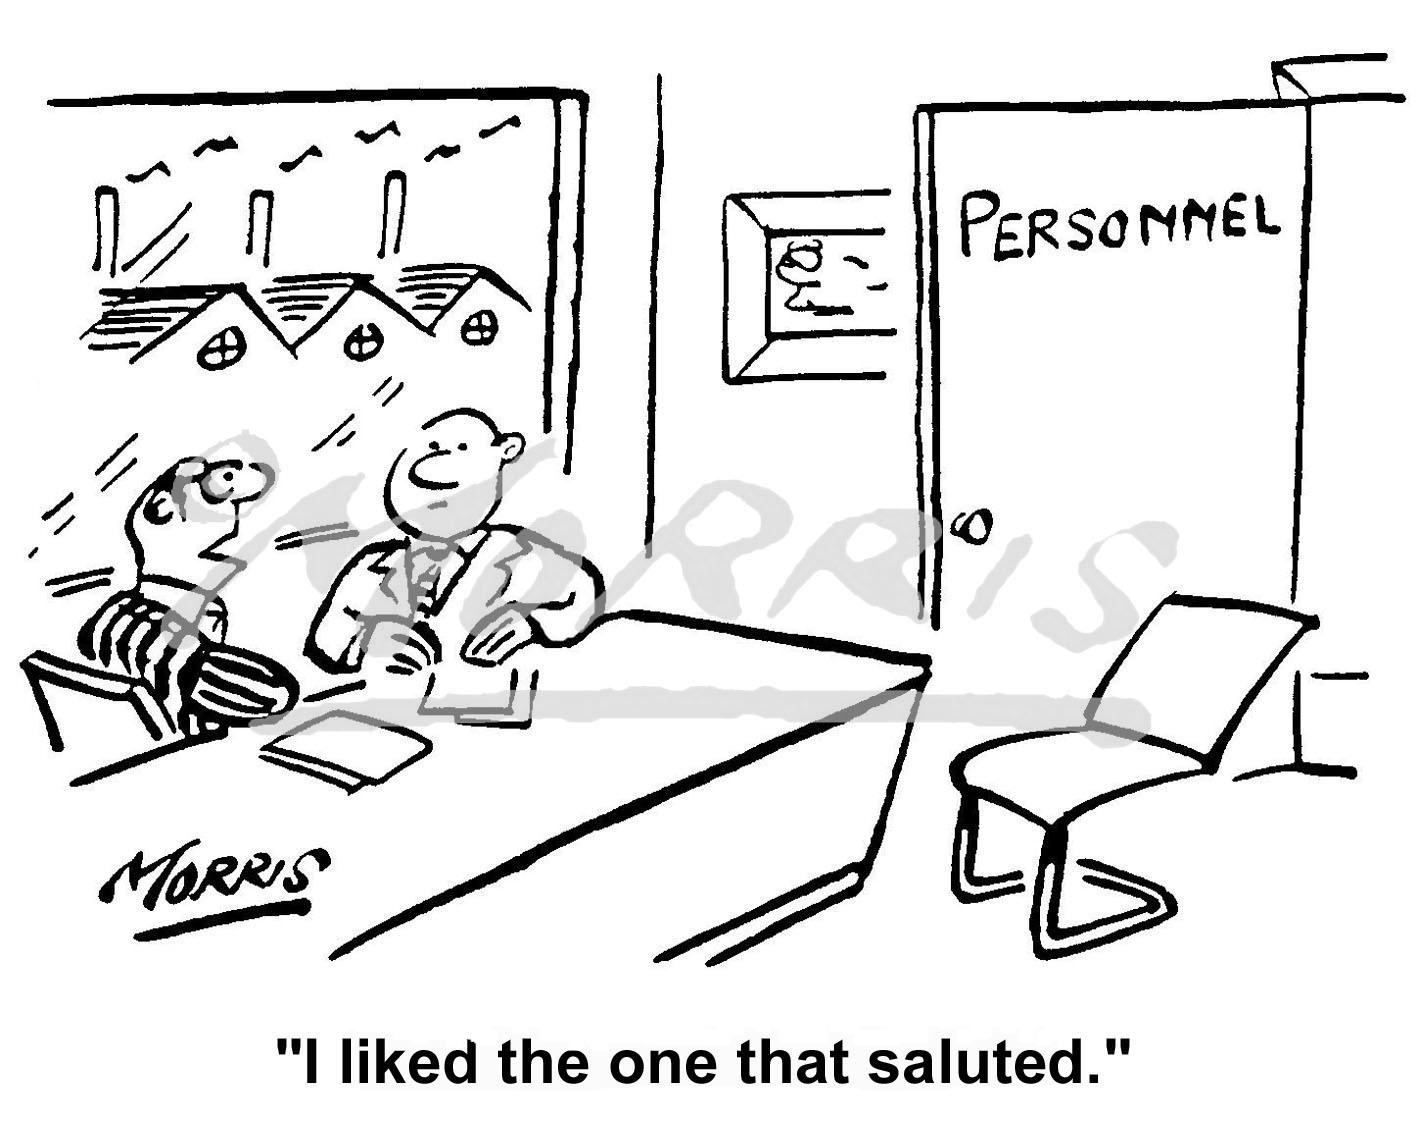 Personnel recruitment cartoon – Ref: 0294bw